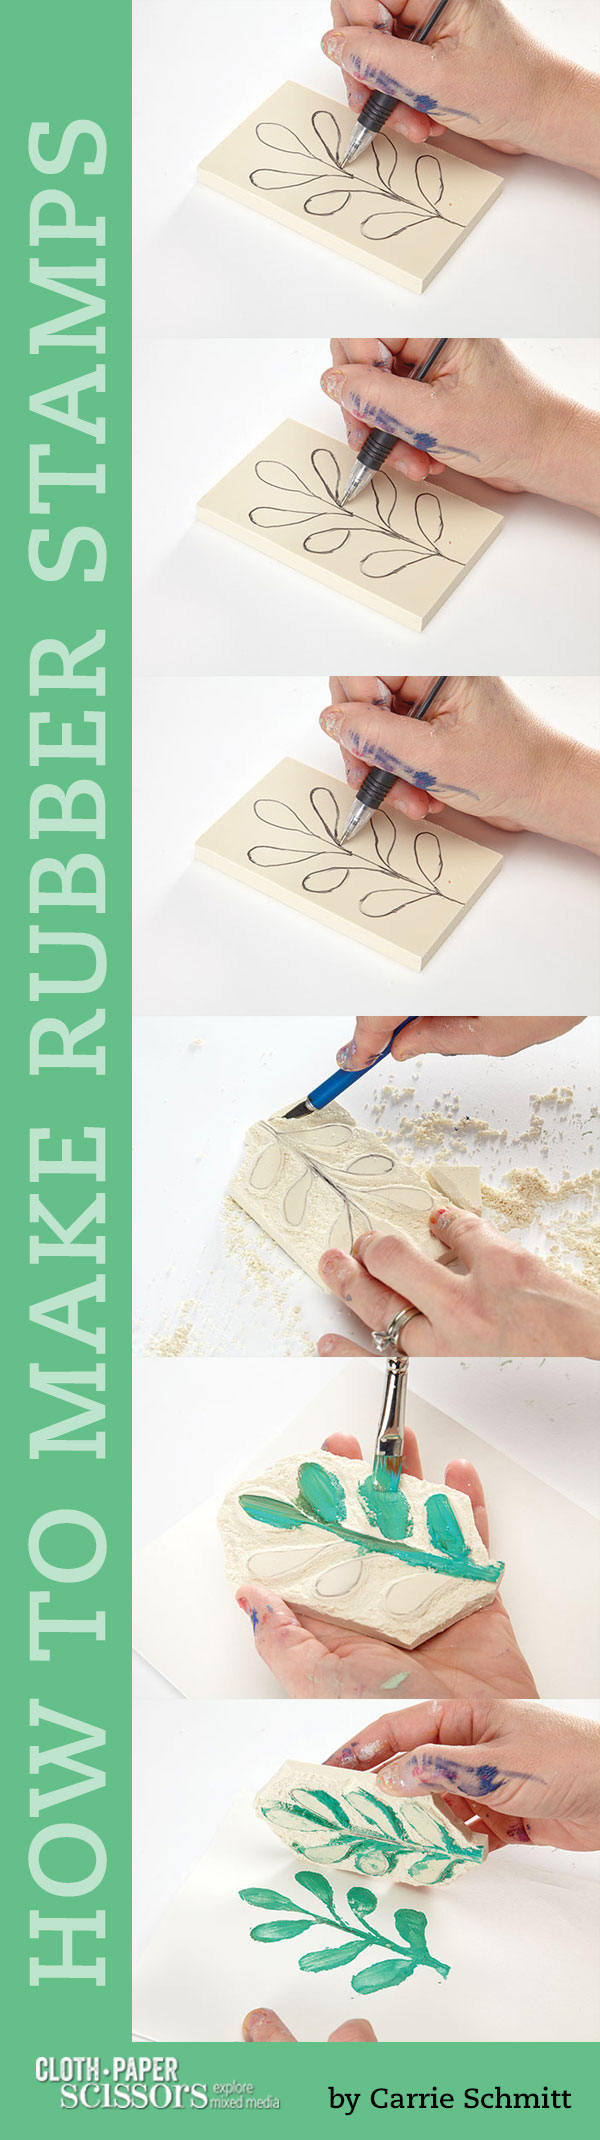 Stamping techniques | Carrie Schmitt, ClothPaperScissors.com